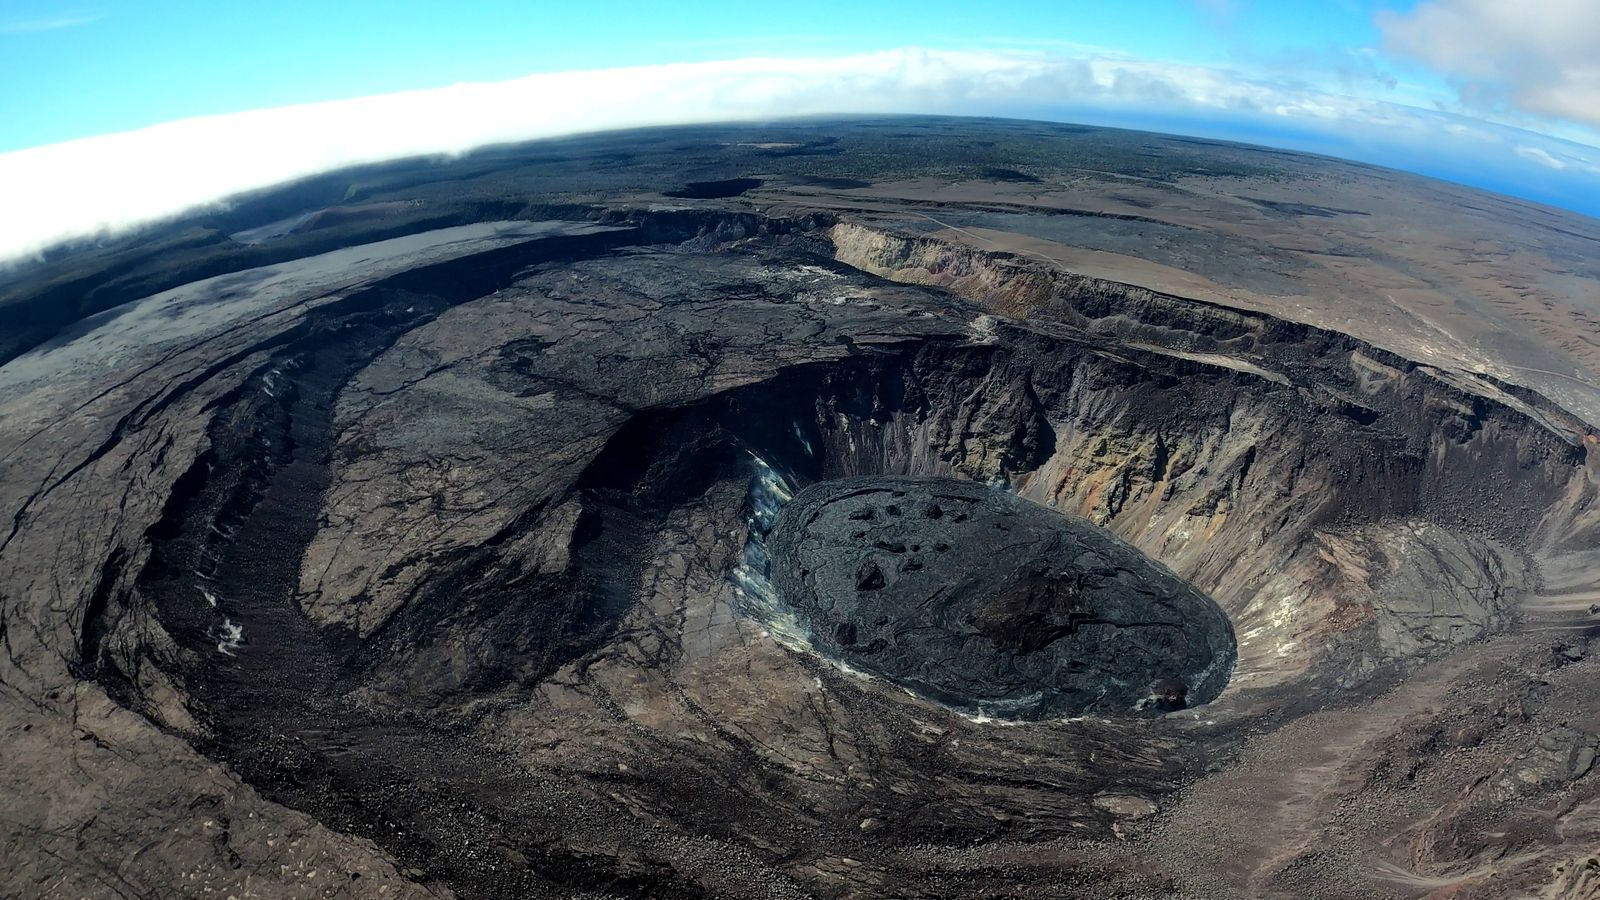 Kilauea summit - Doc. HVO-USGS photo by M. Patrick 22.07.2021 - one click to enlarge